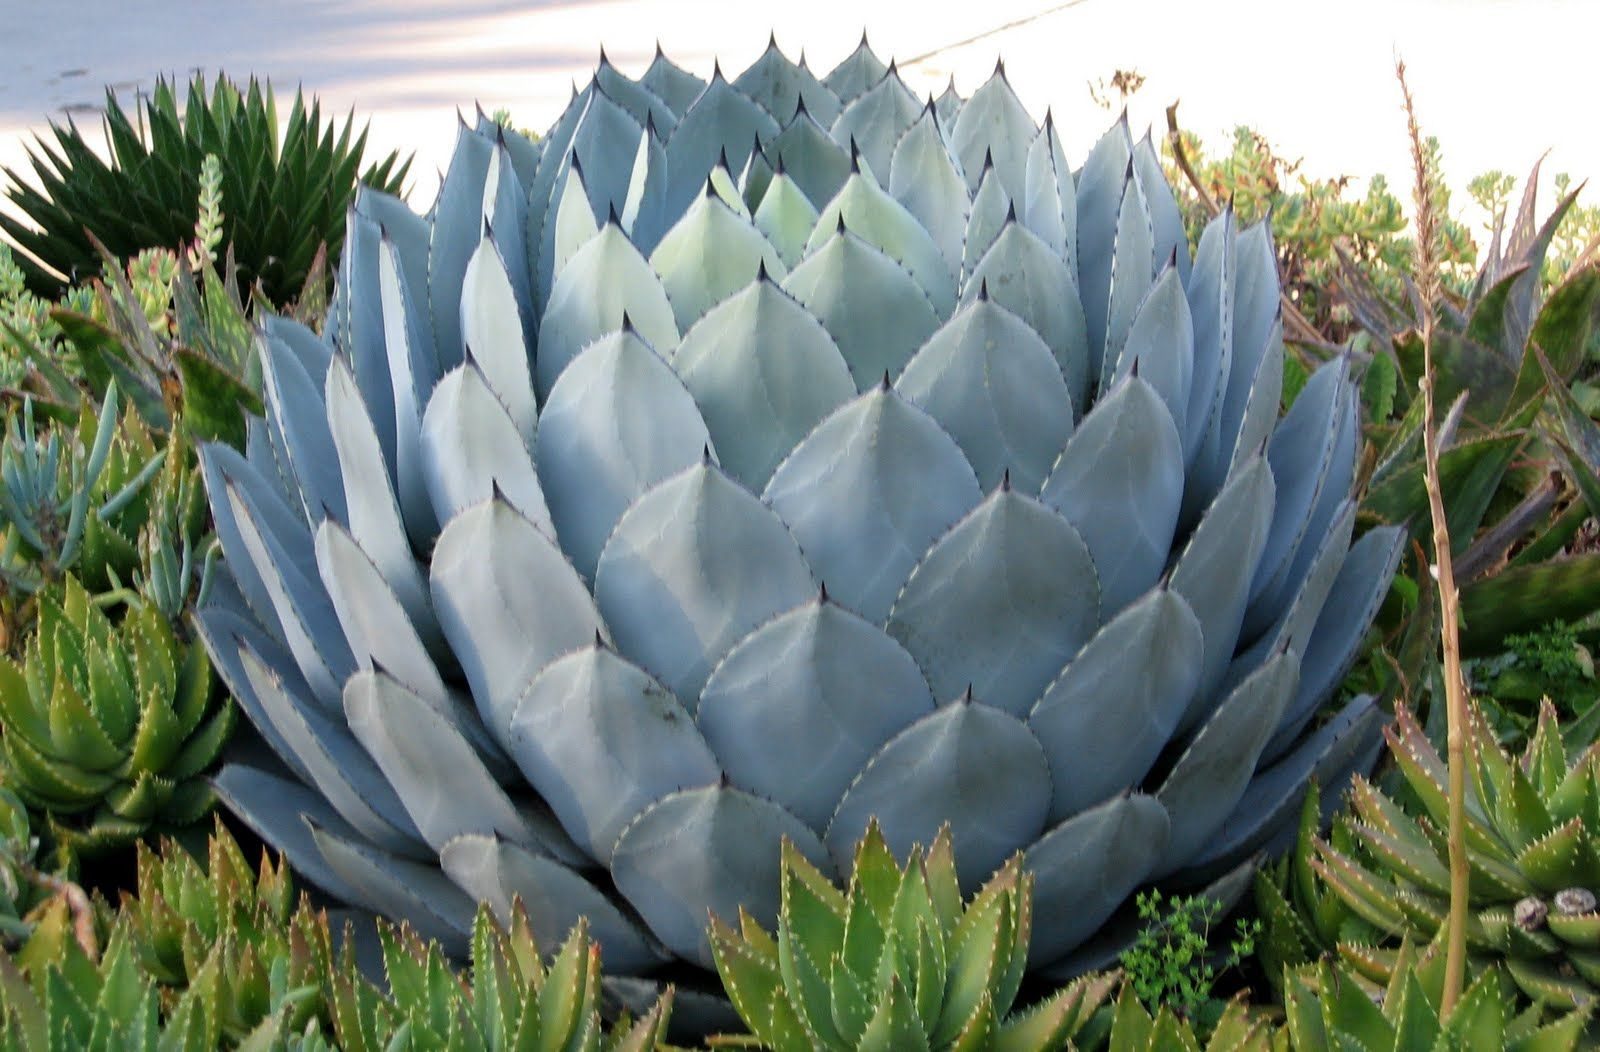 this species looks like a giant artichoke Agave , Bing